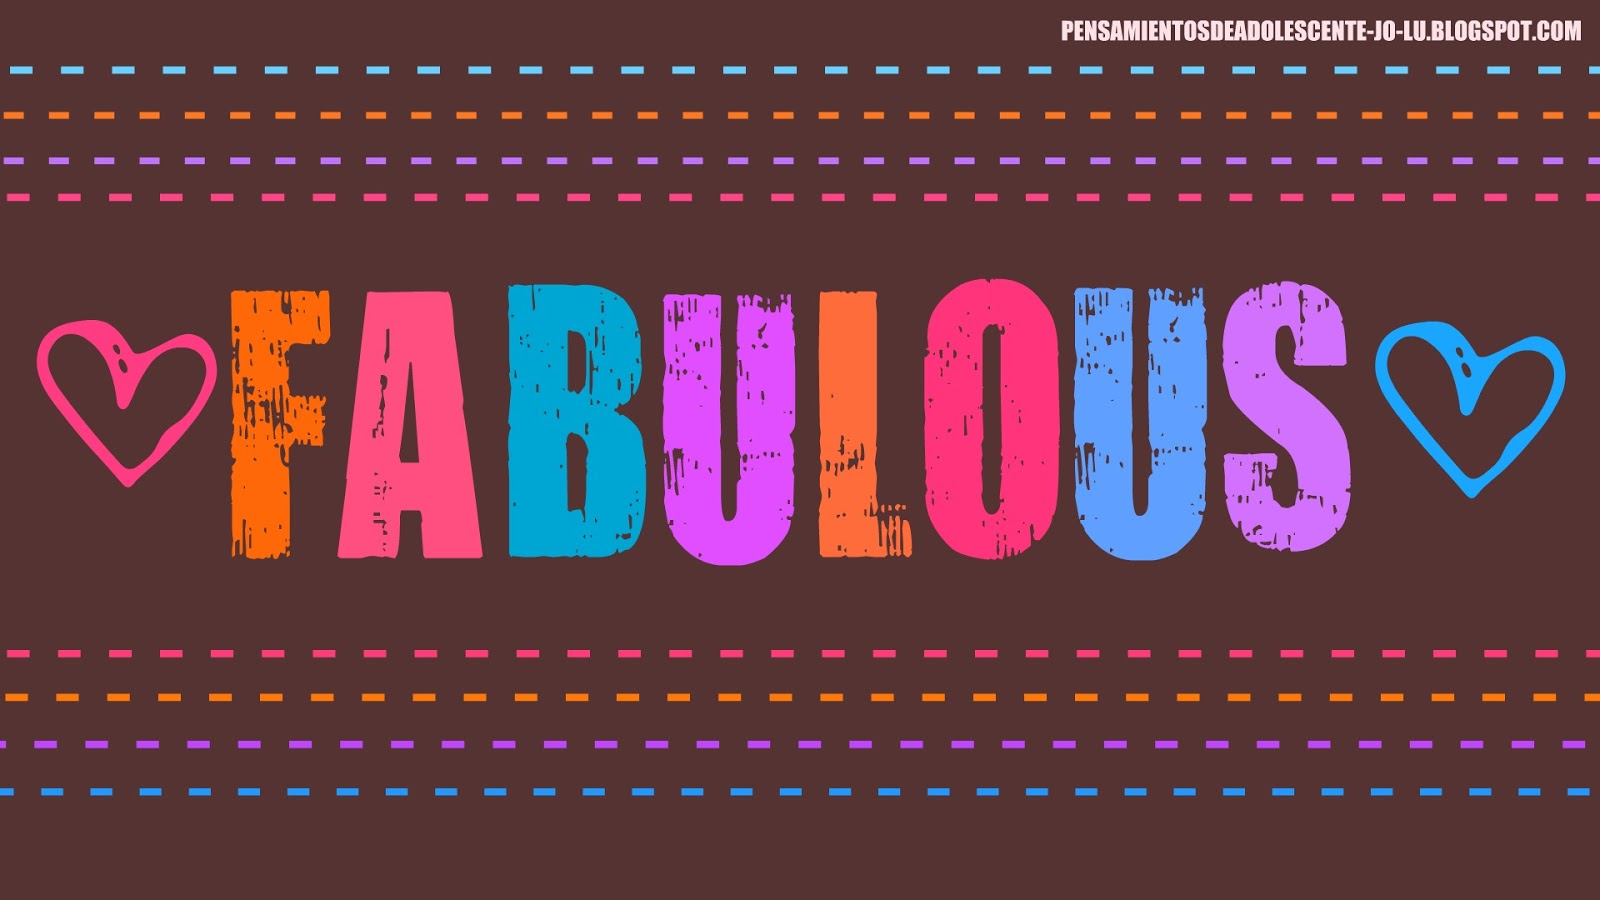 WALLPAPER FABULOUS 1600x900